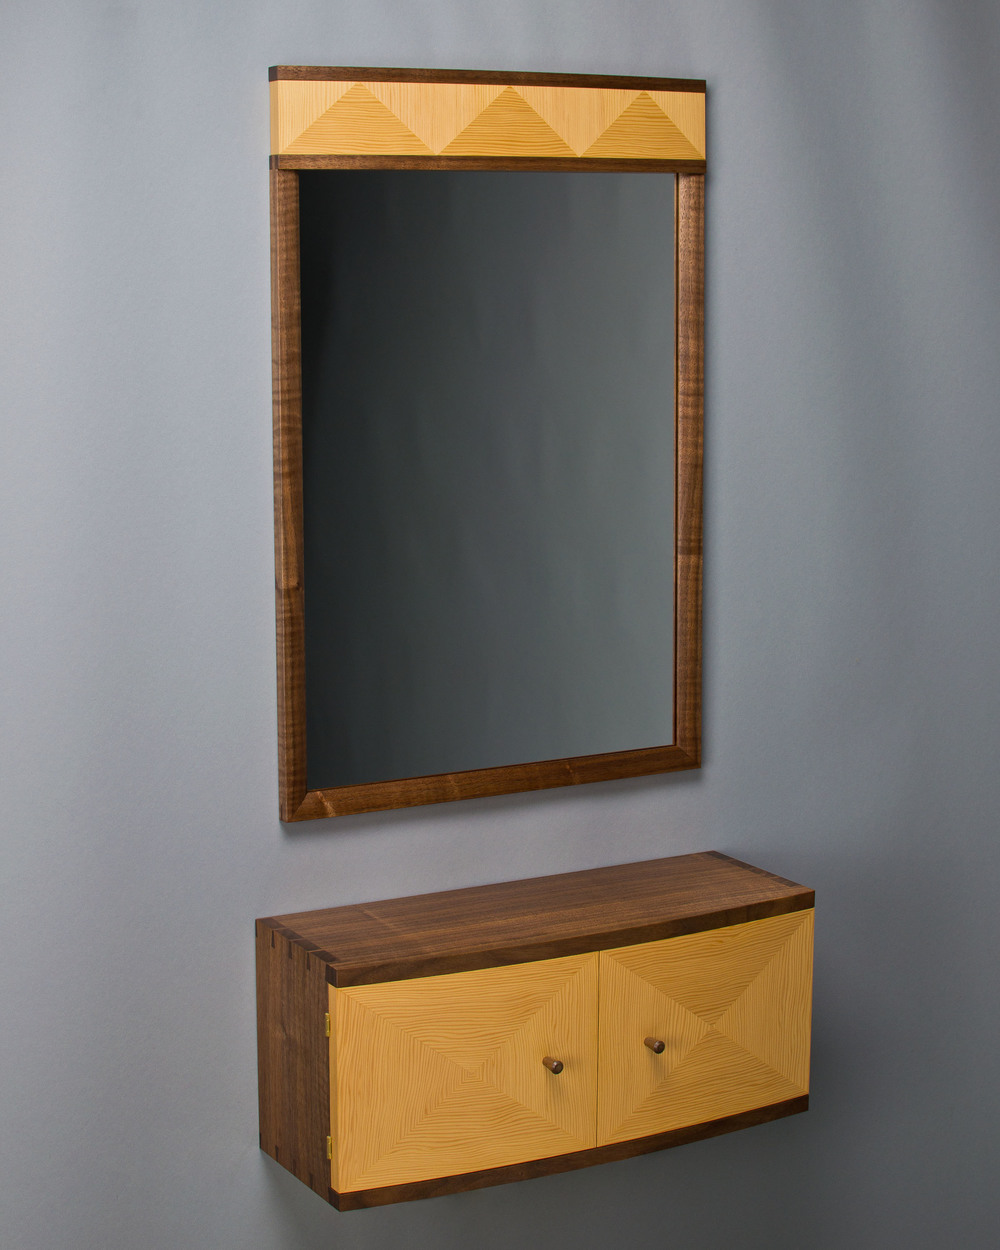 a mirror and wall cabinet made of black walnut and douglas-fir